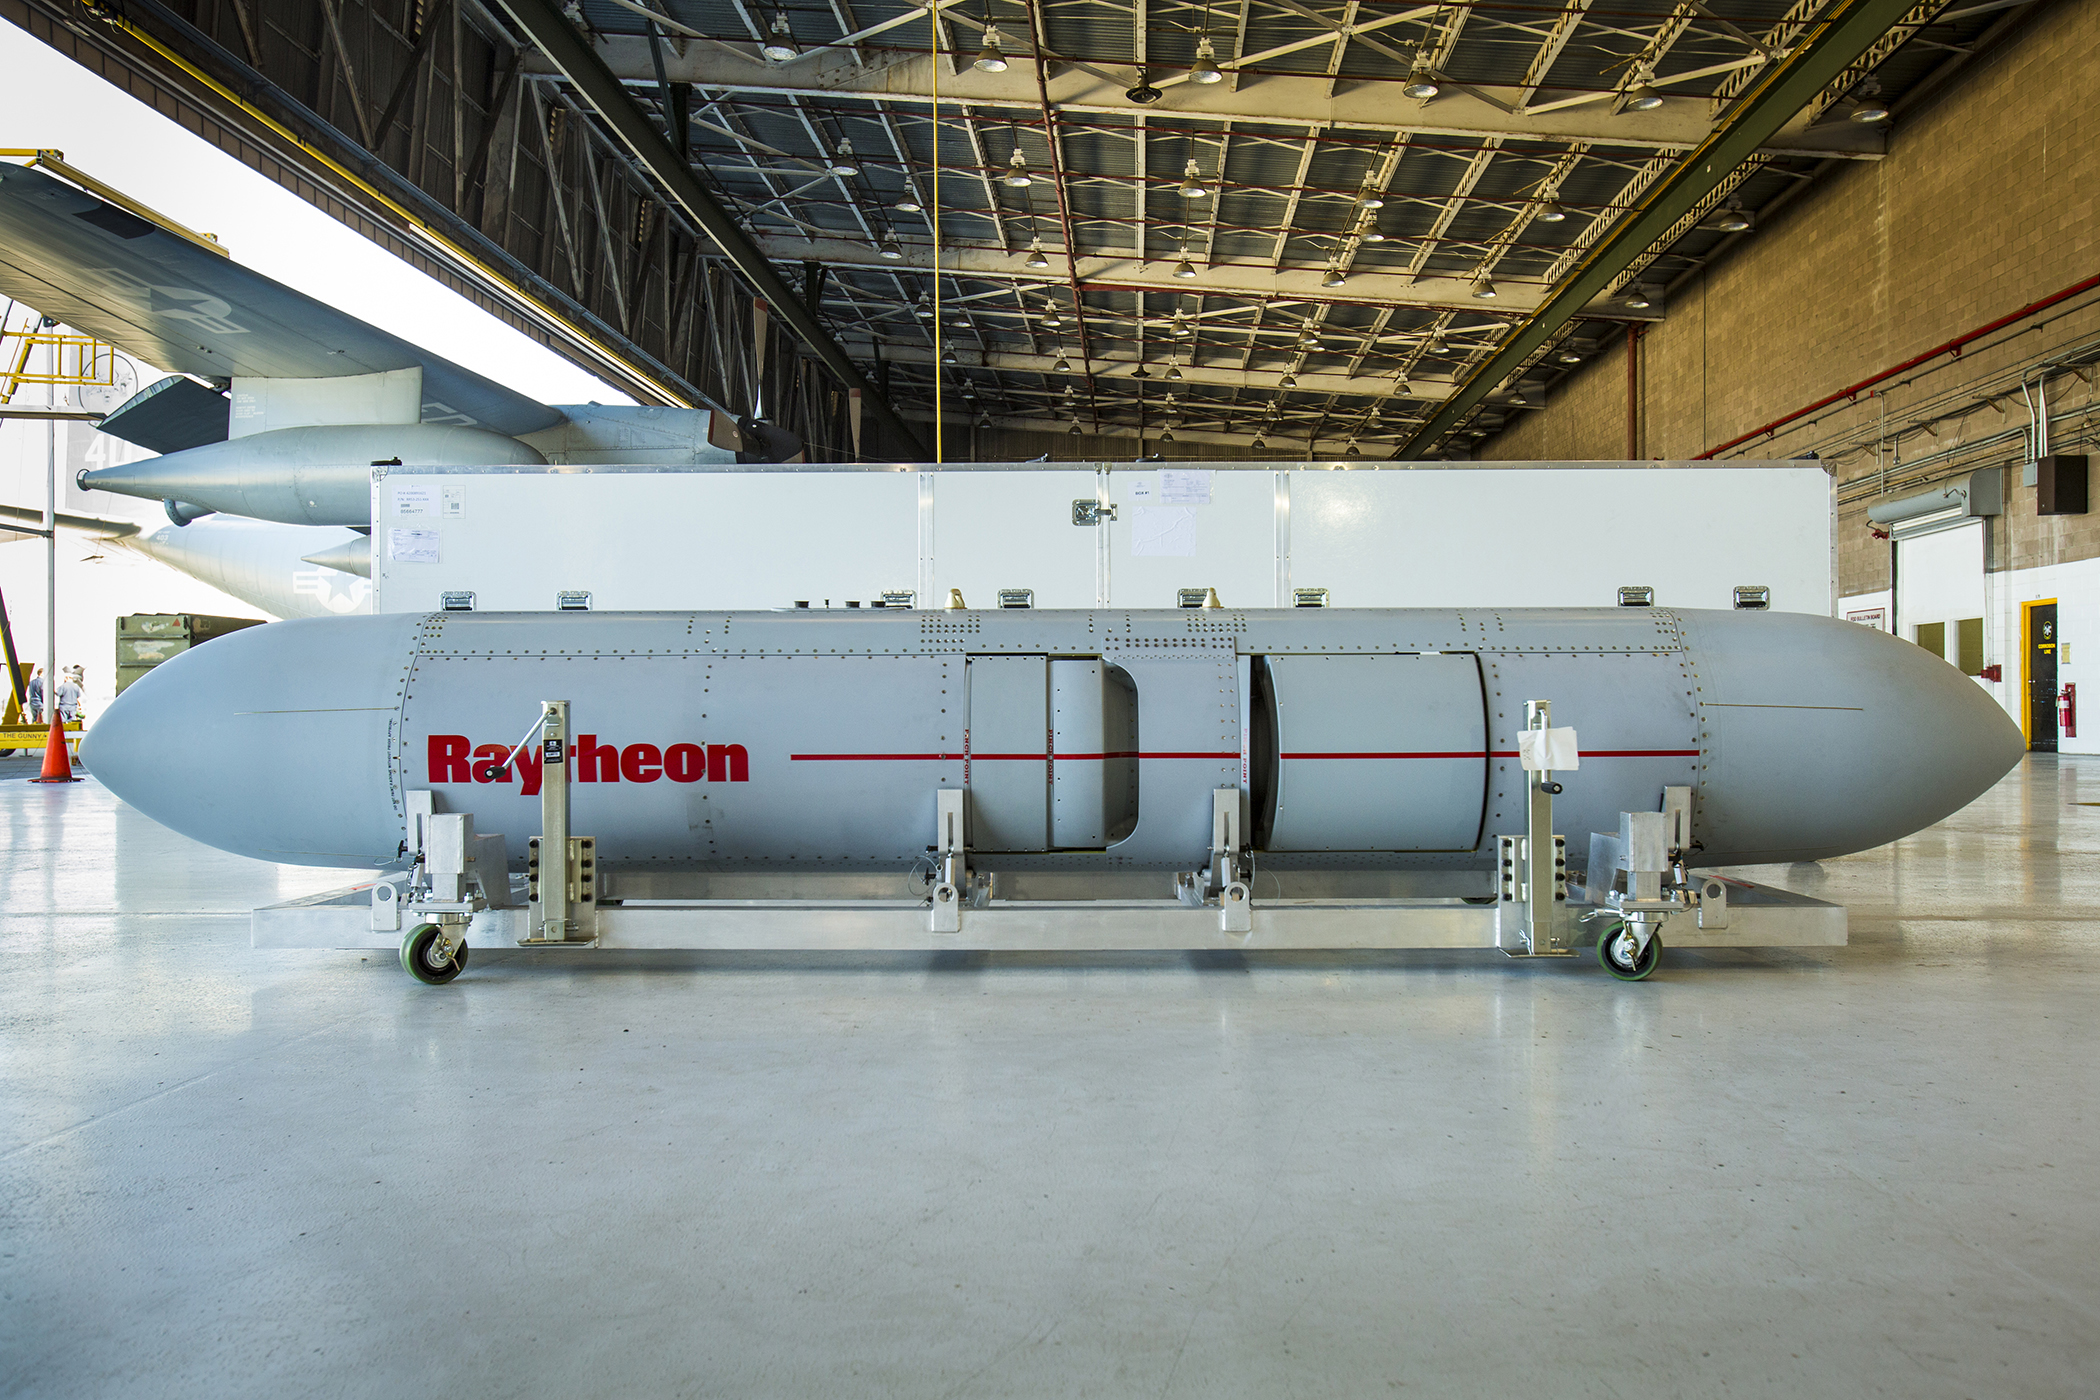 Raytheon's Next Generation Jammer